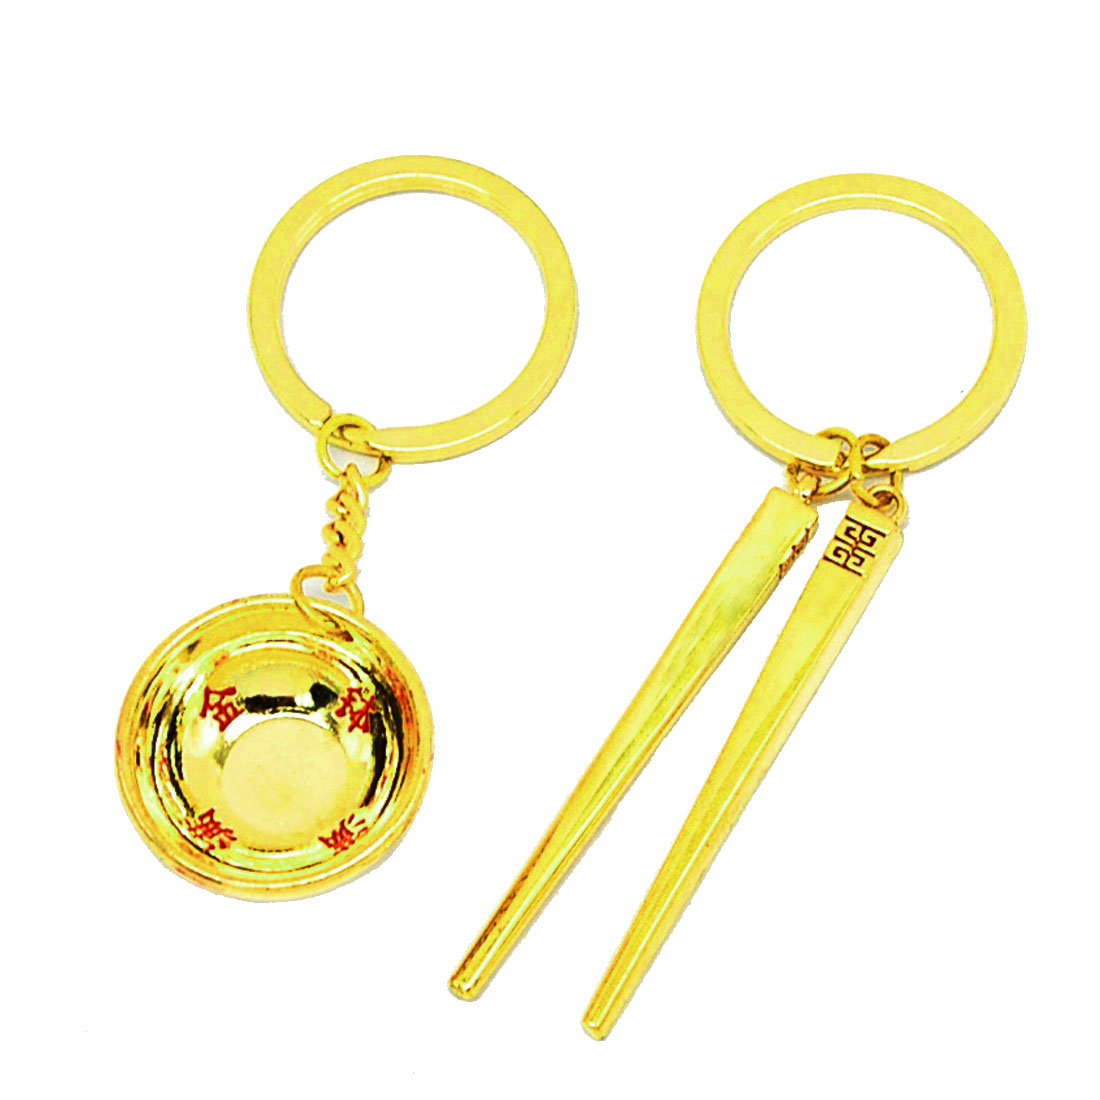 Golden Chopsticks Keychain Bowl Key Ring Chain Set